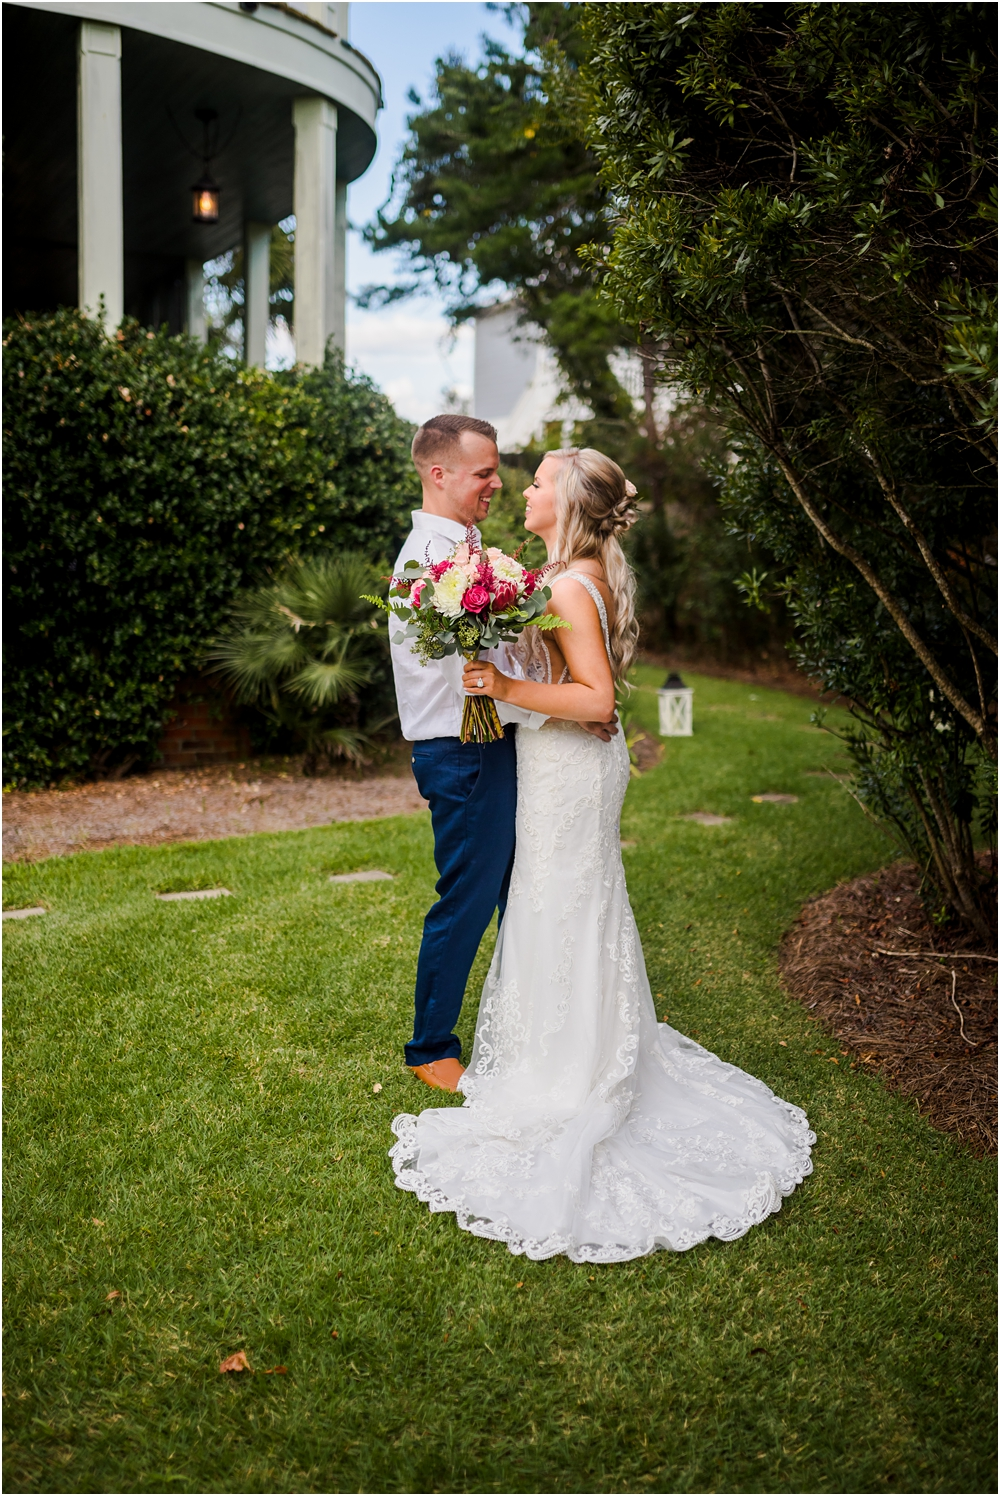 mcglothlin-wedding-kiersten-stevenson-photography-30a-panama-city-beach-dothan-tallahassee-(60-of-145).jpg